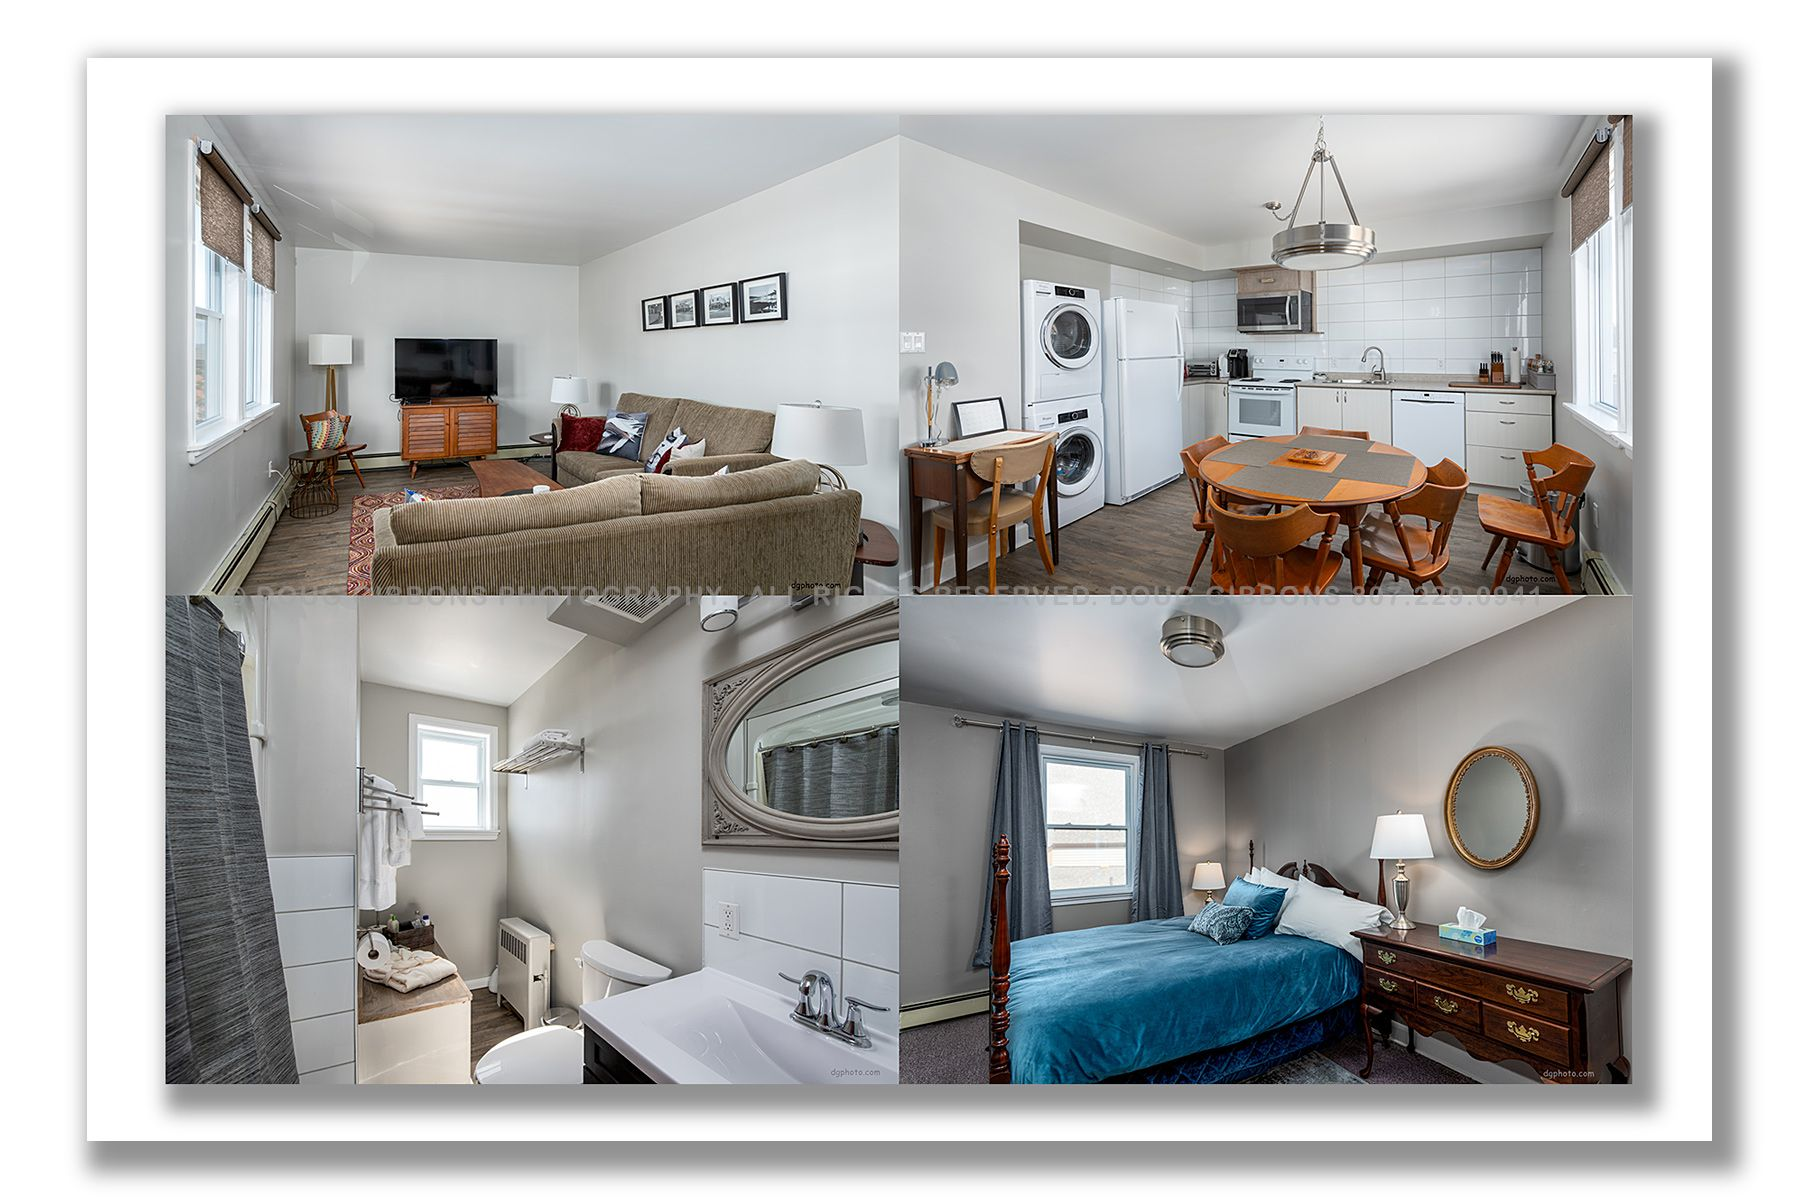 Lakeview Manor B&B Annex